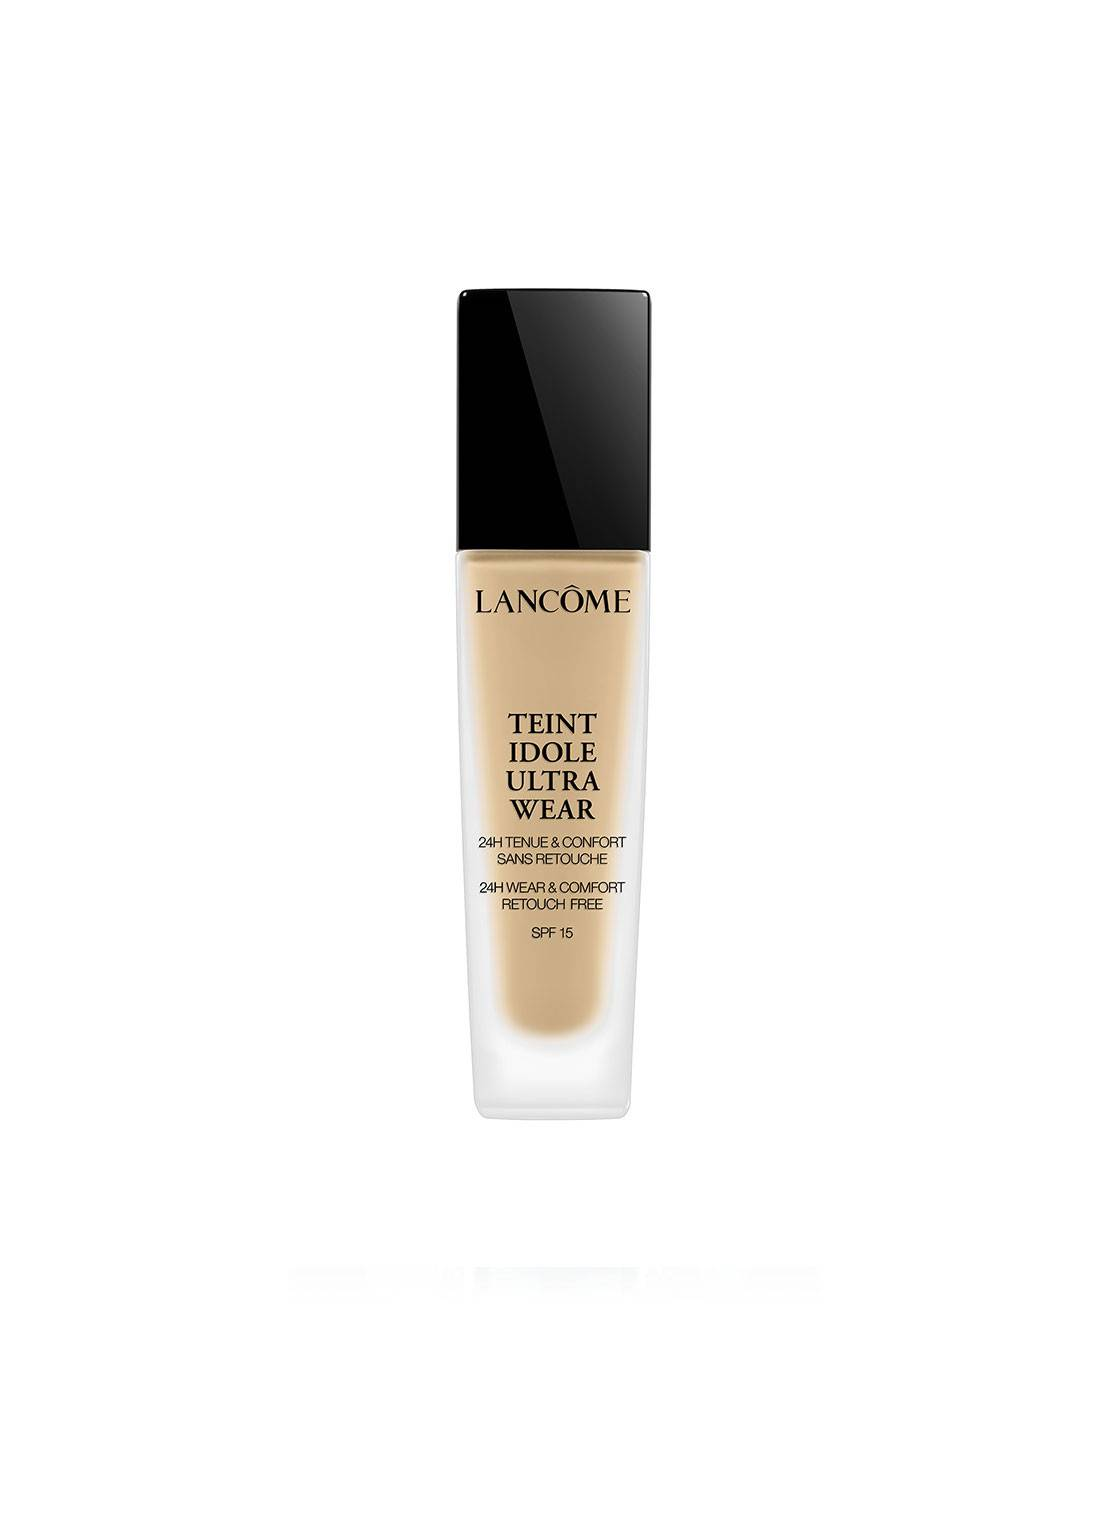 Lancôme lancome Teint Idole Ultra Wear Foundation FPS 15 - 010